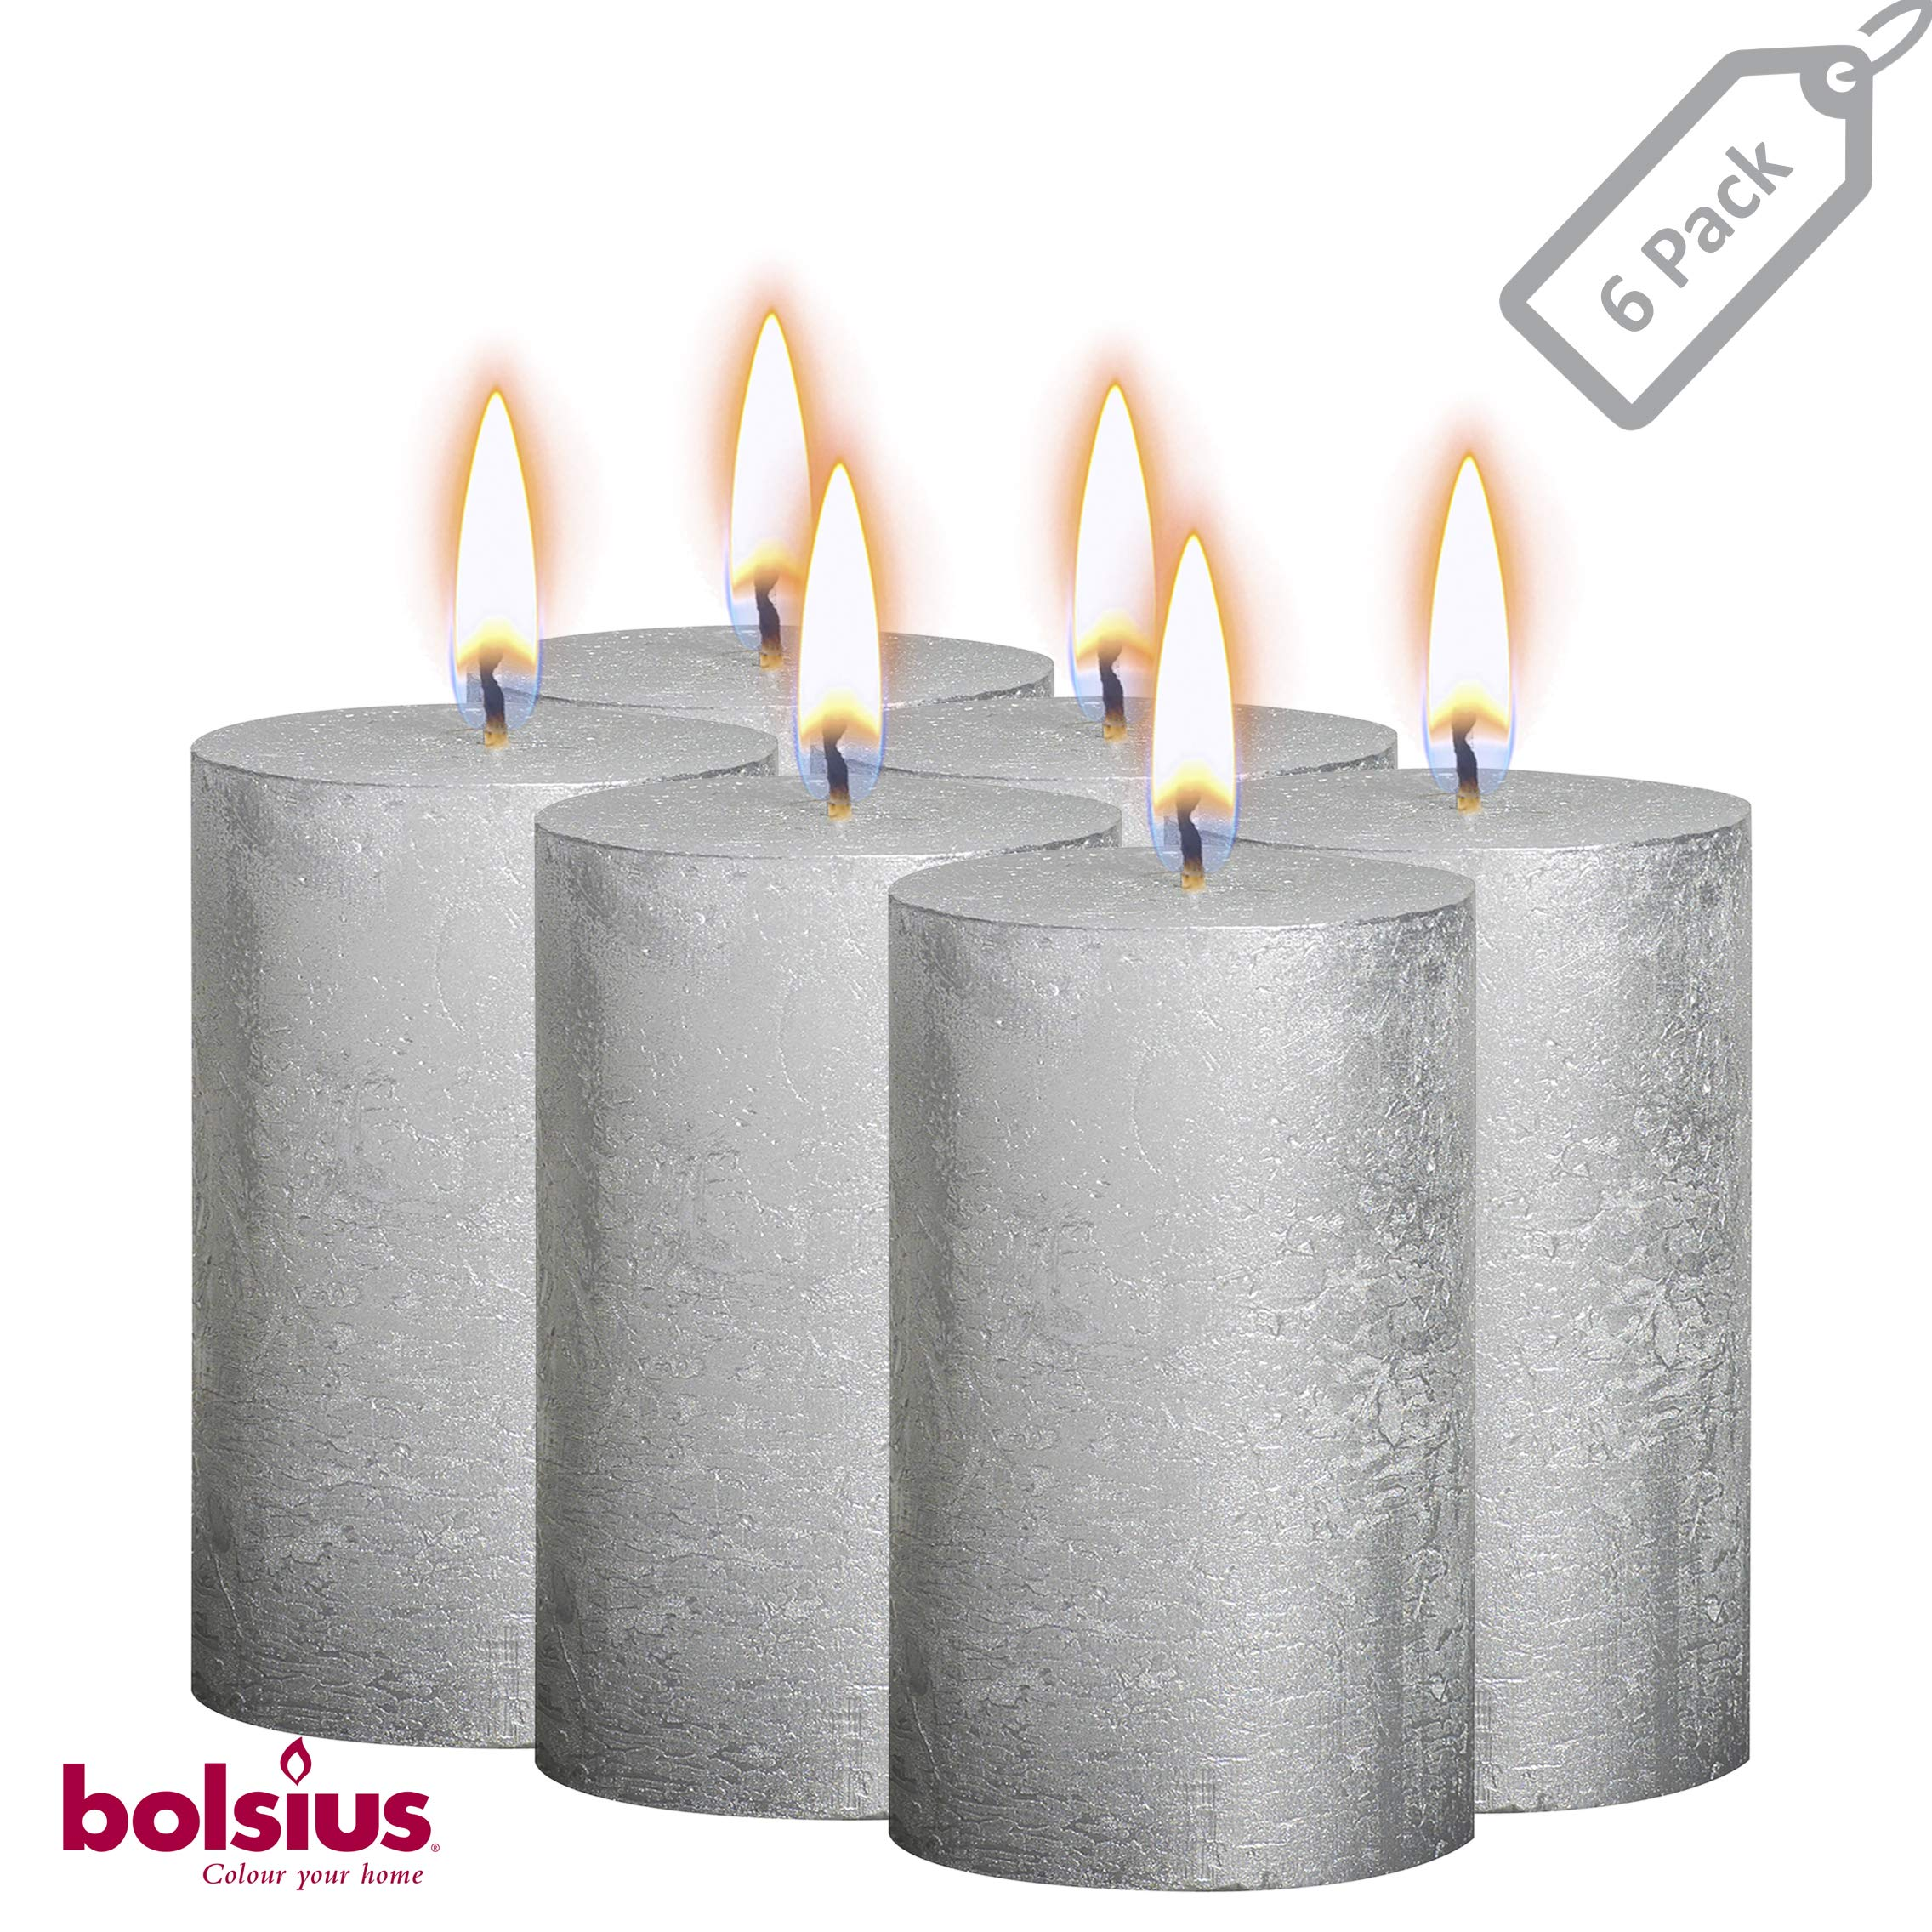 BOLSIUS Rustic Full Metallic Silver Candles - Set of 6 Unscented Pillar Candles - Silver Candles with a Full Metallic Coat - Slow Burning - Perfect Décor Candle - 130/68m 5 X 2.75 Inches